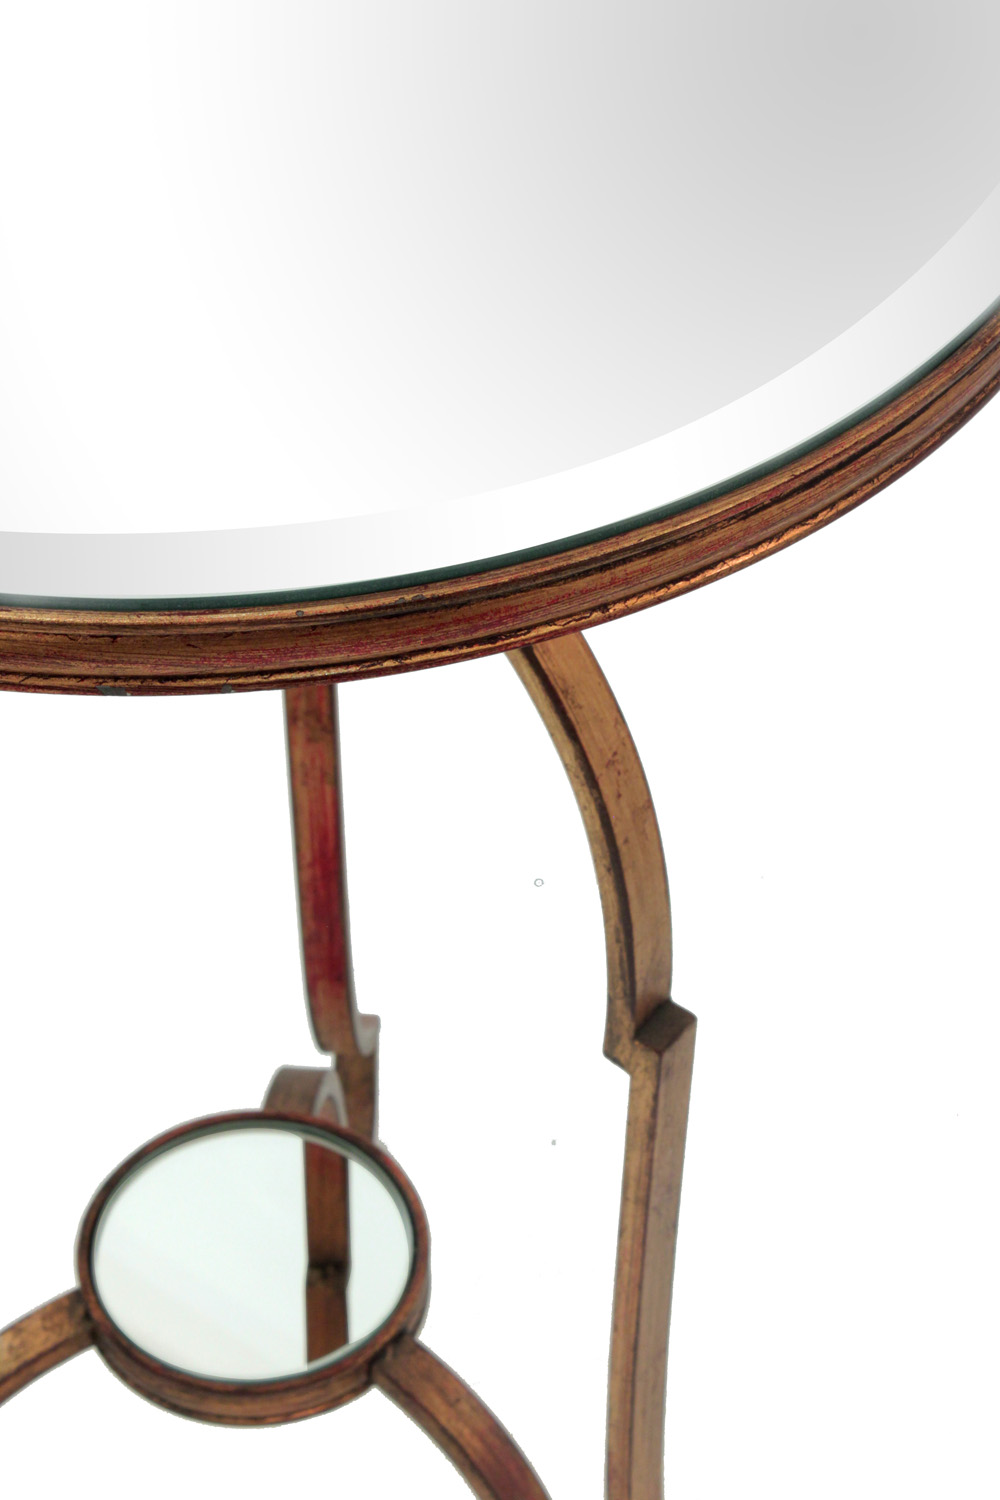 70's 55 gilded curvy+mirror tops endtable141 detail3 hires.jpg